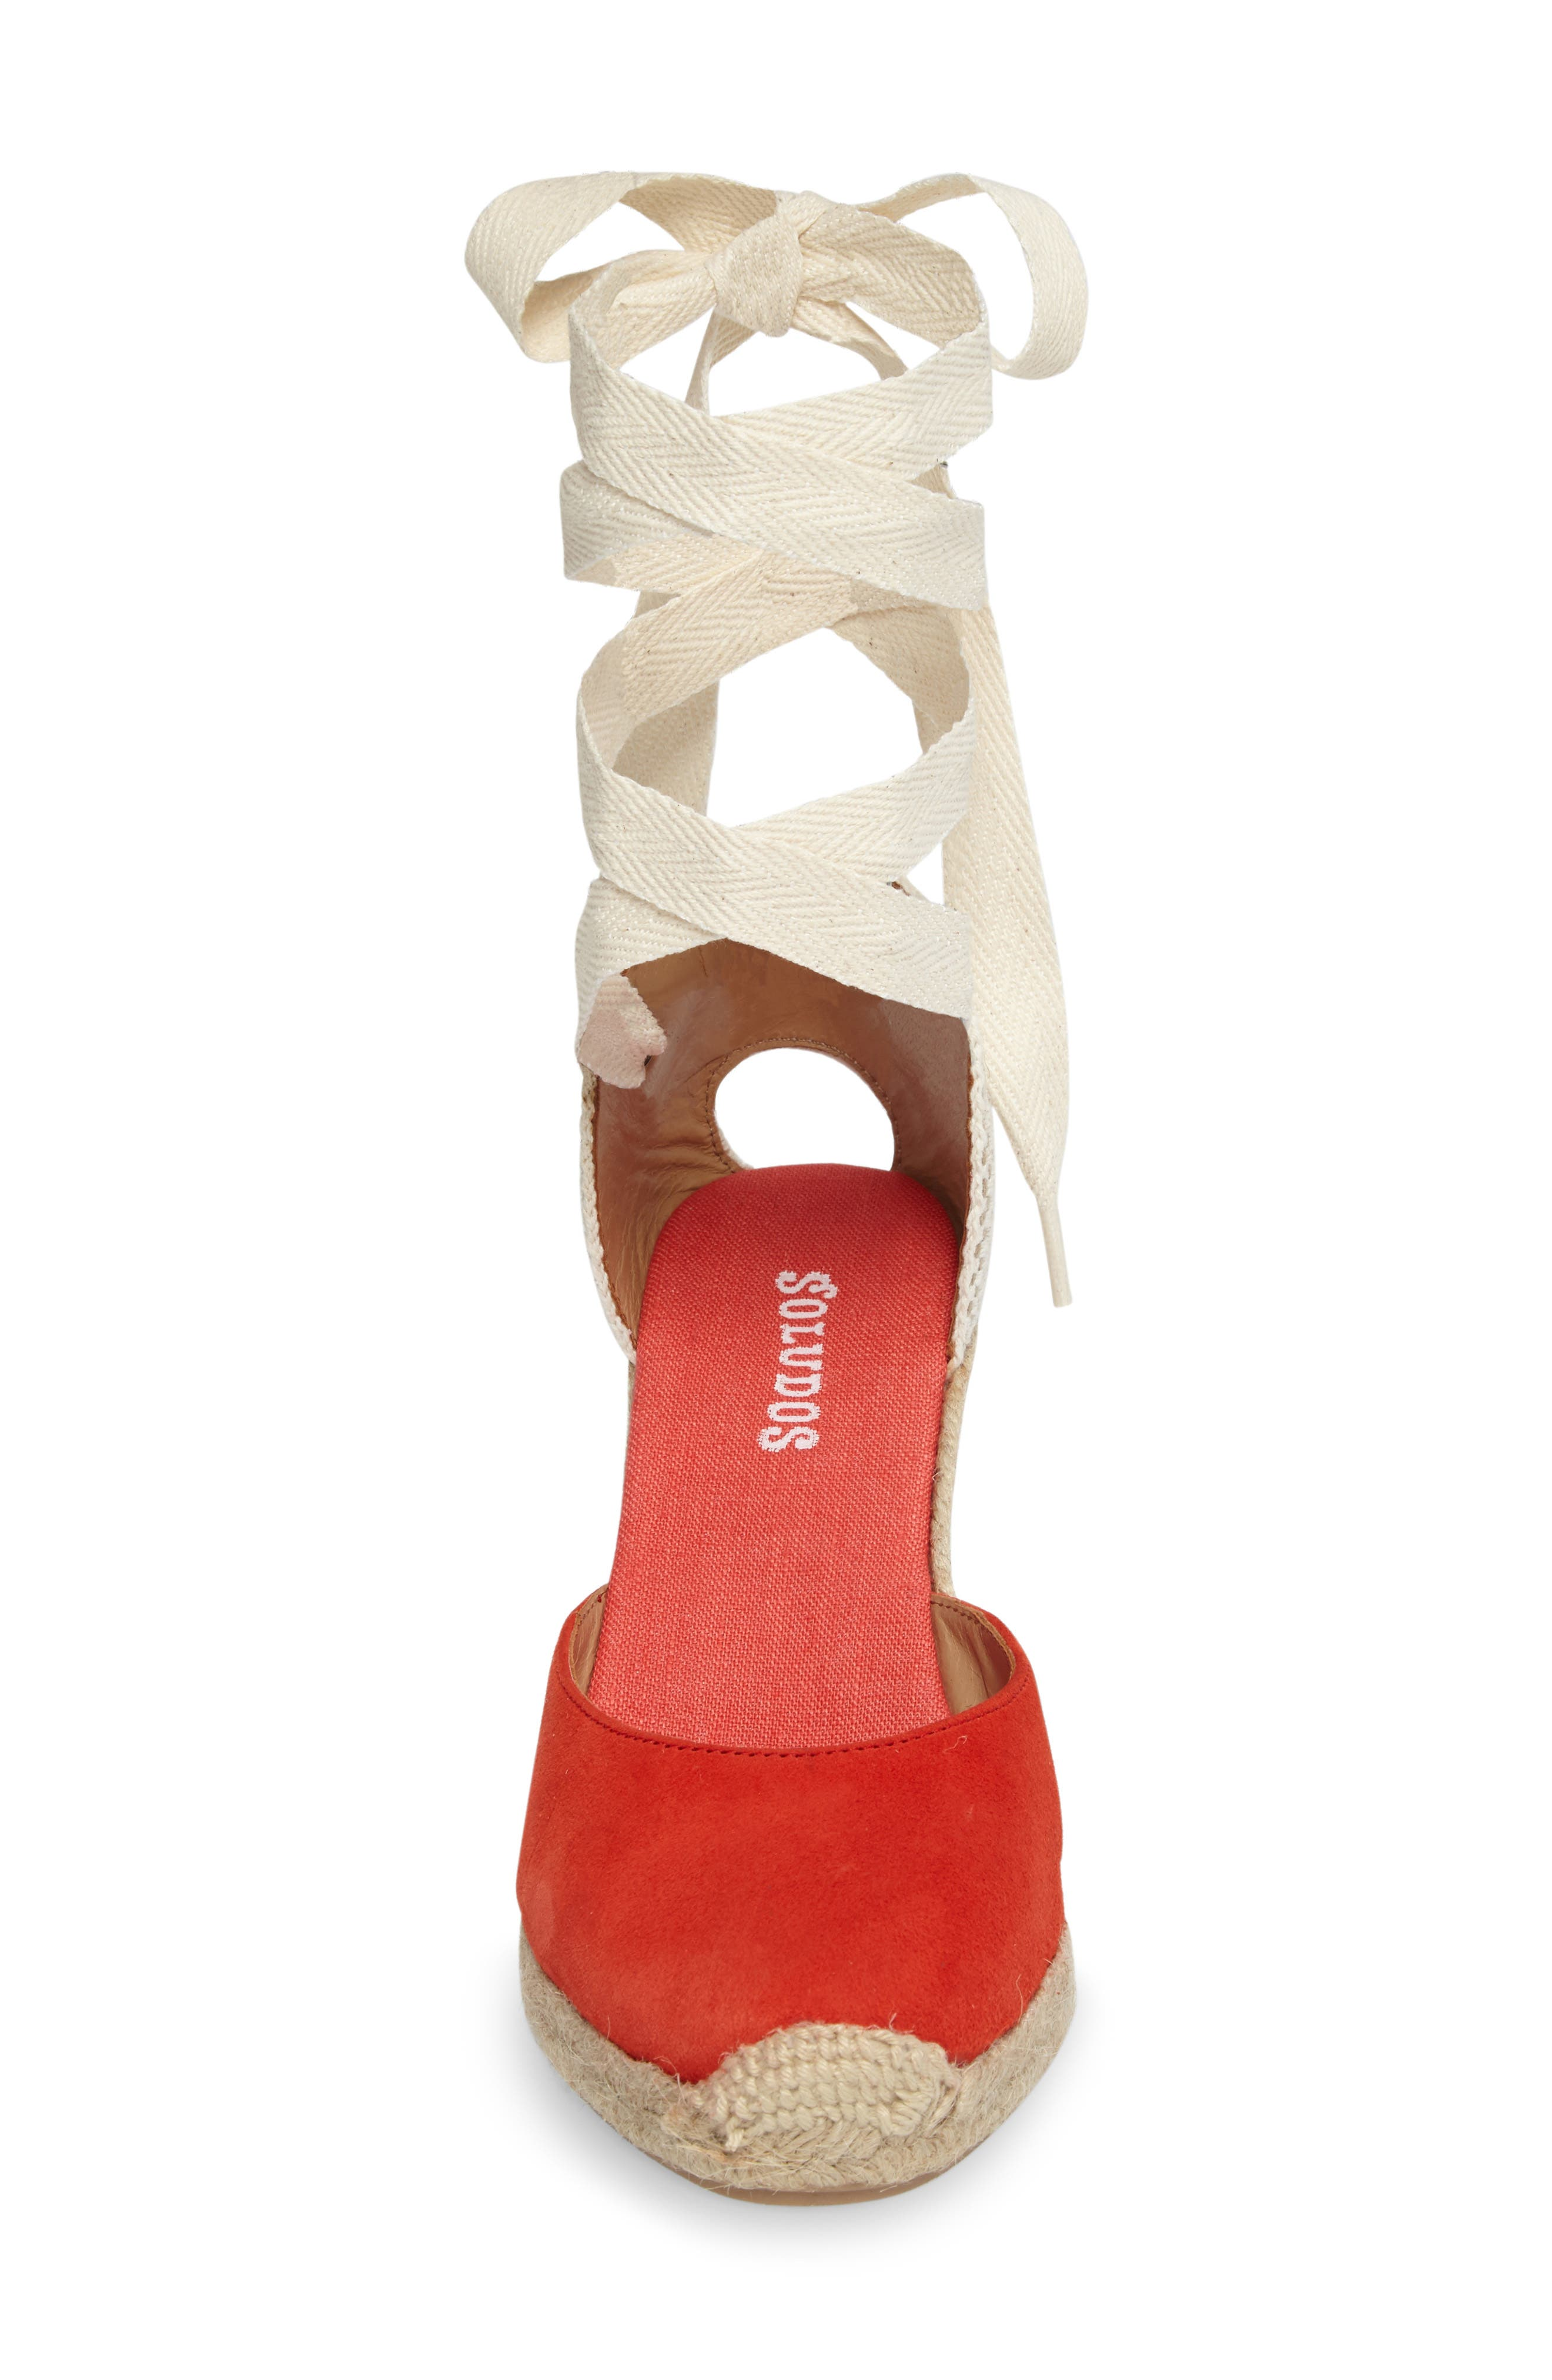 Wedge Sandal,                             Alternate thumbnail 4, color,                             Fire Red Suede